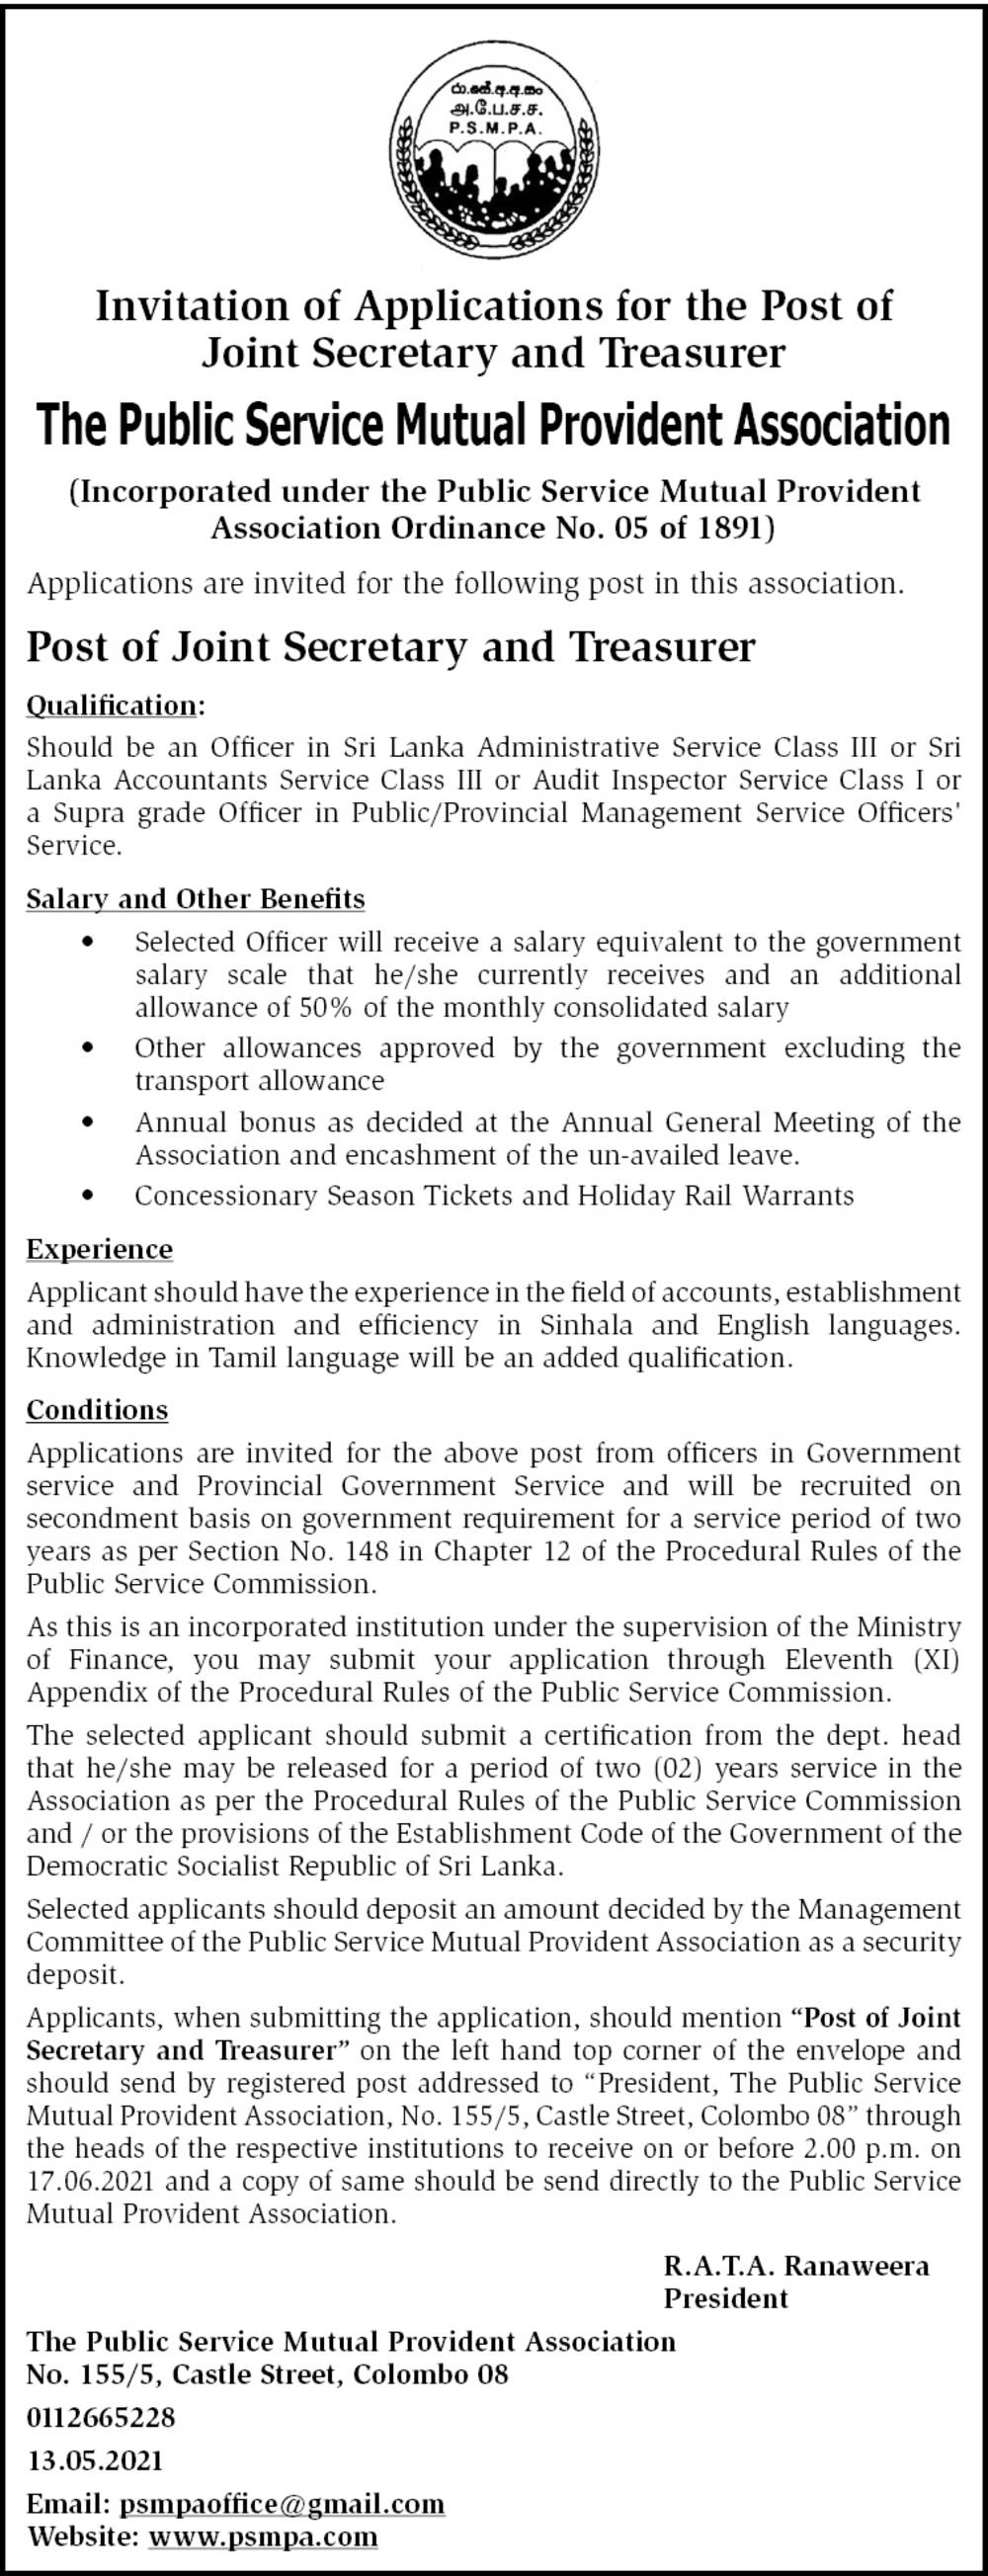 Joint Secretary and Treasurer - The Public Service Mutual Provident Association